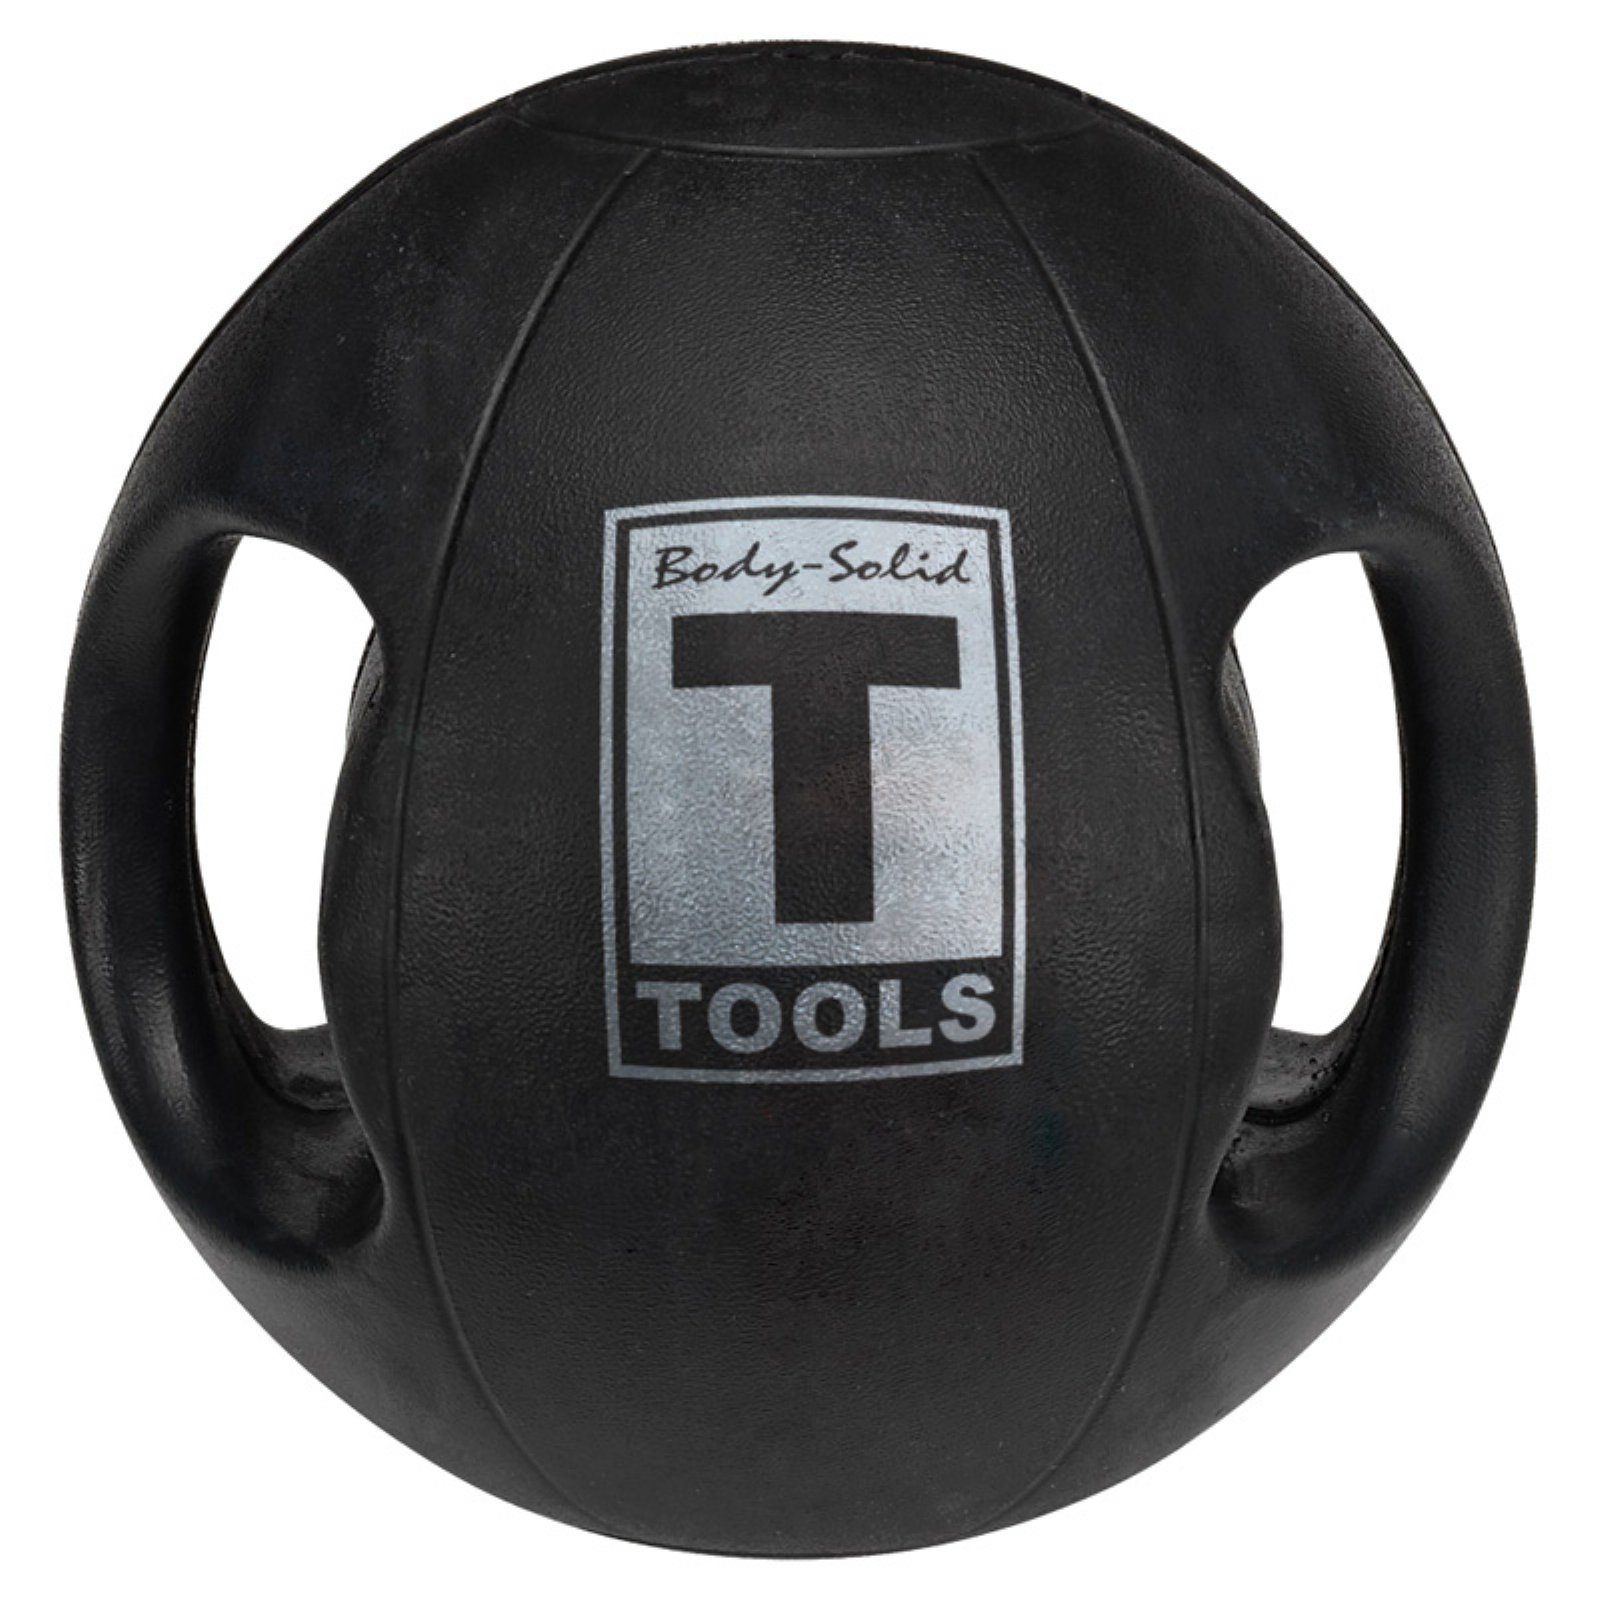 Body-Solid Tools Dual Grip Medicine Ball